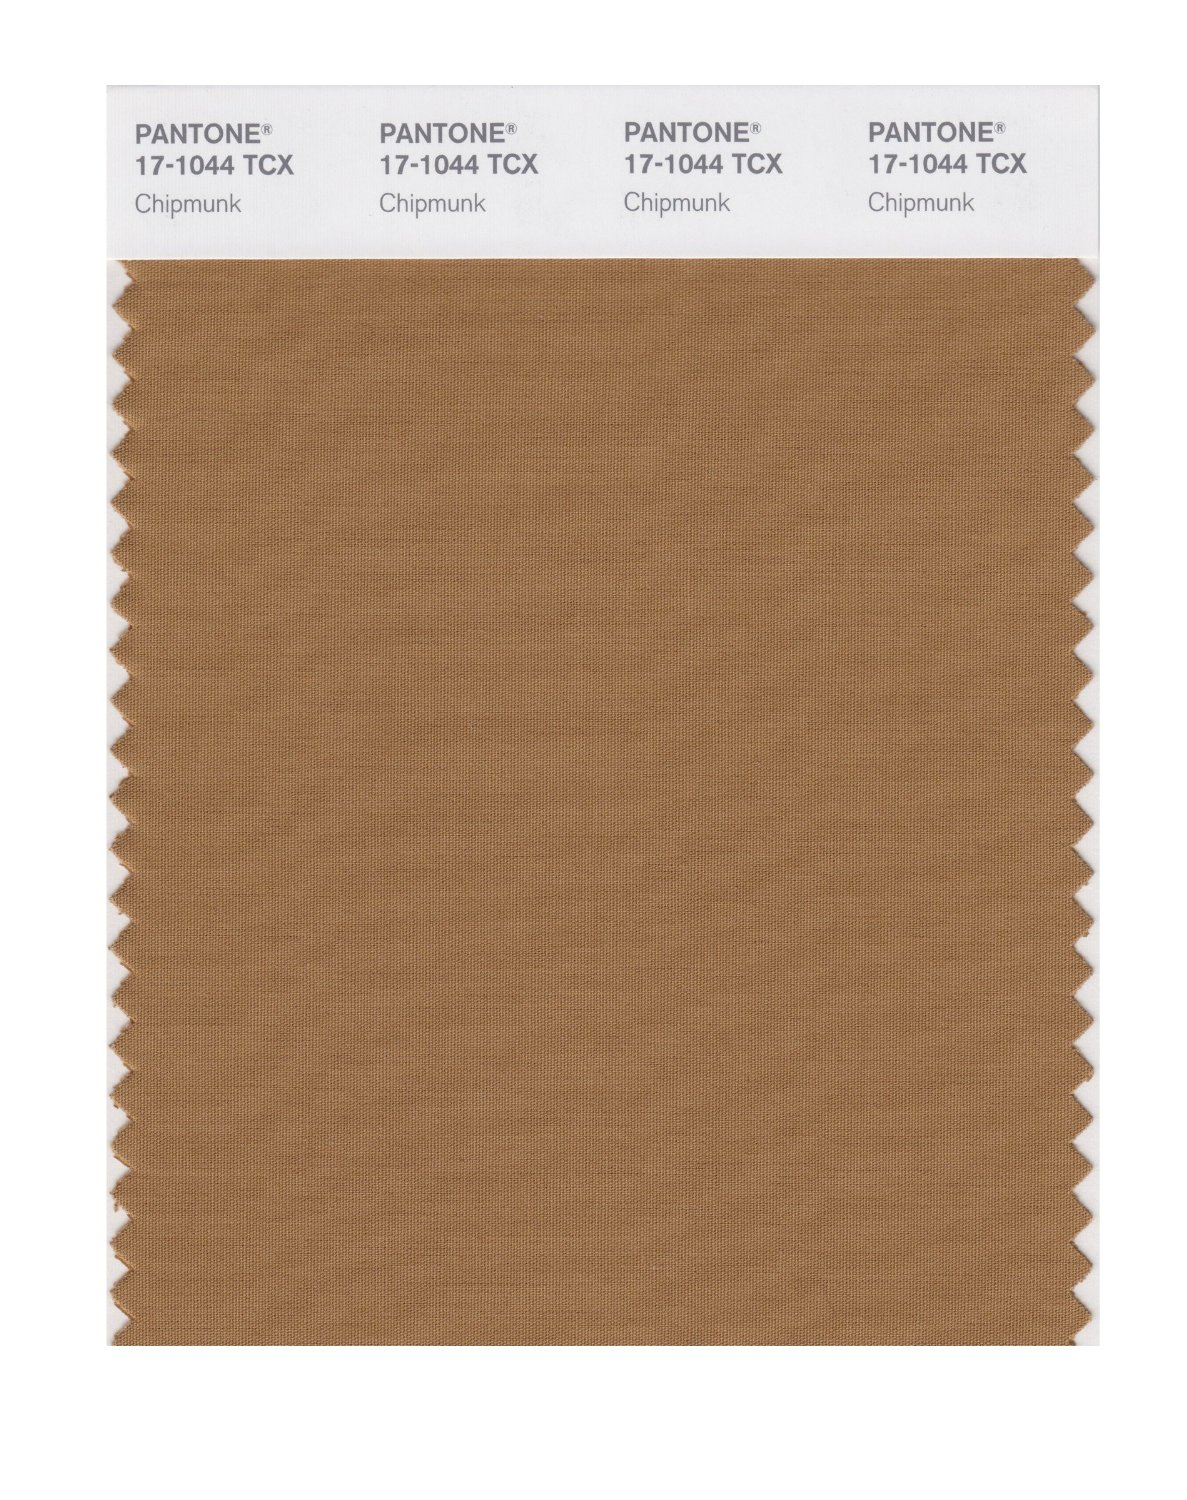 Pantone Smart Swatch 17-1044 Chipmunk